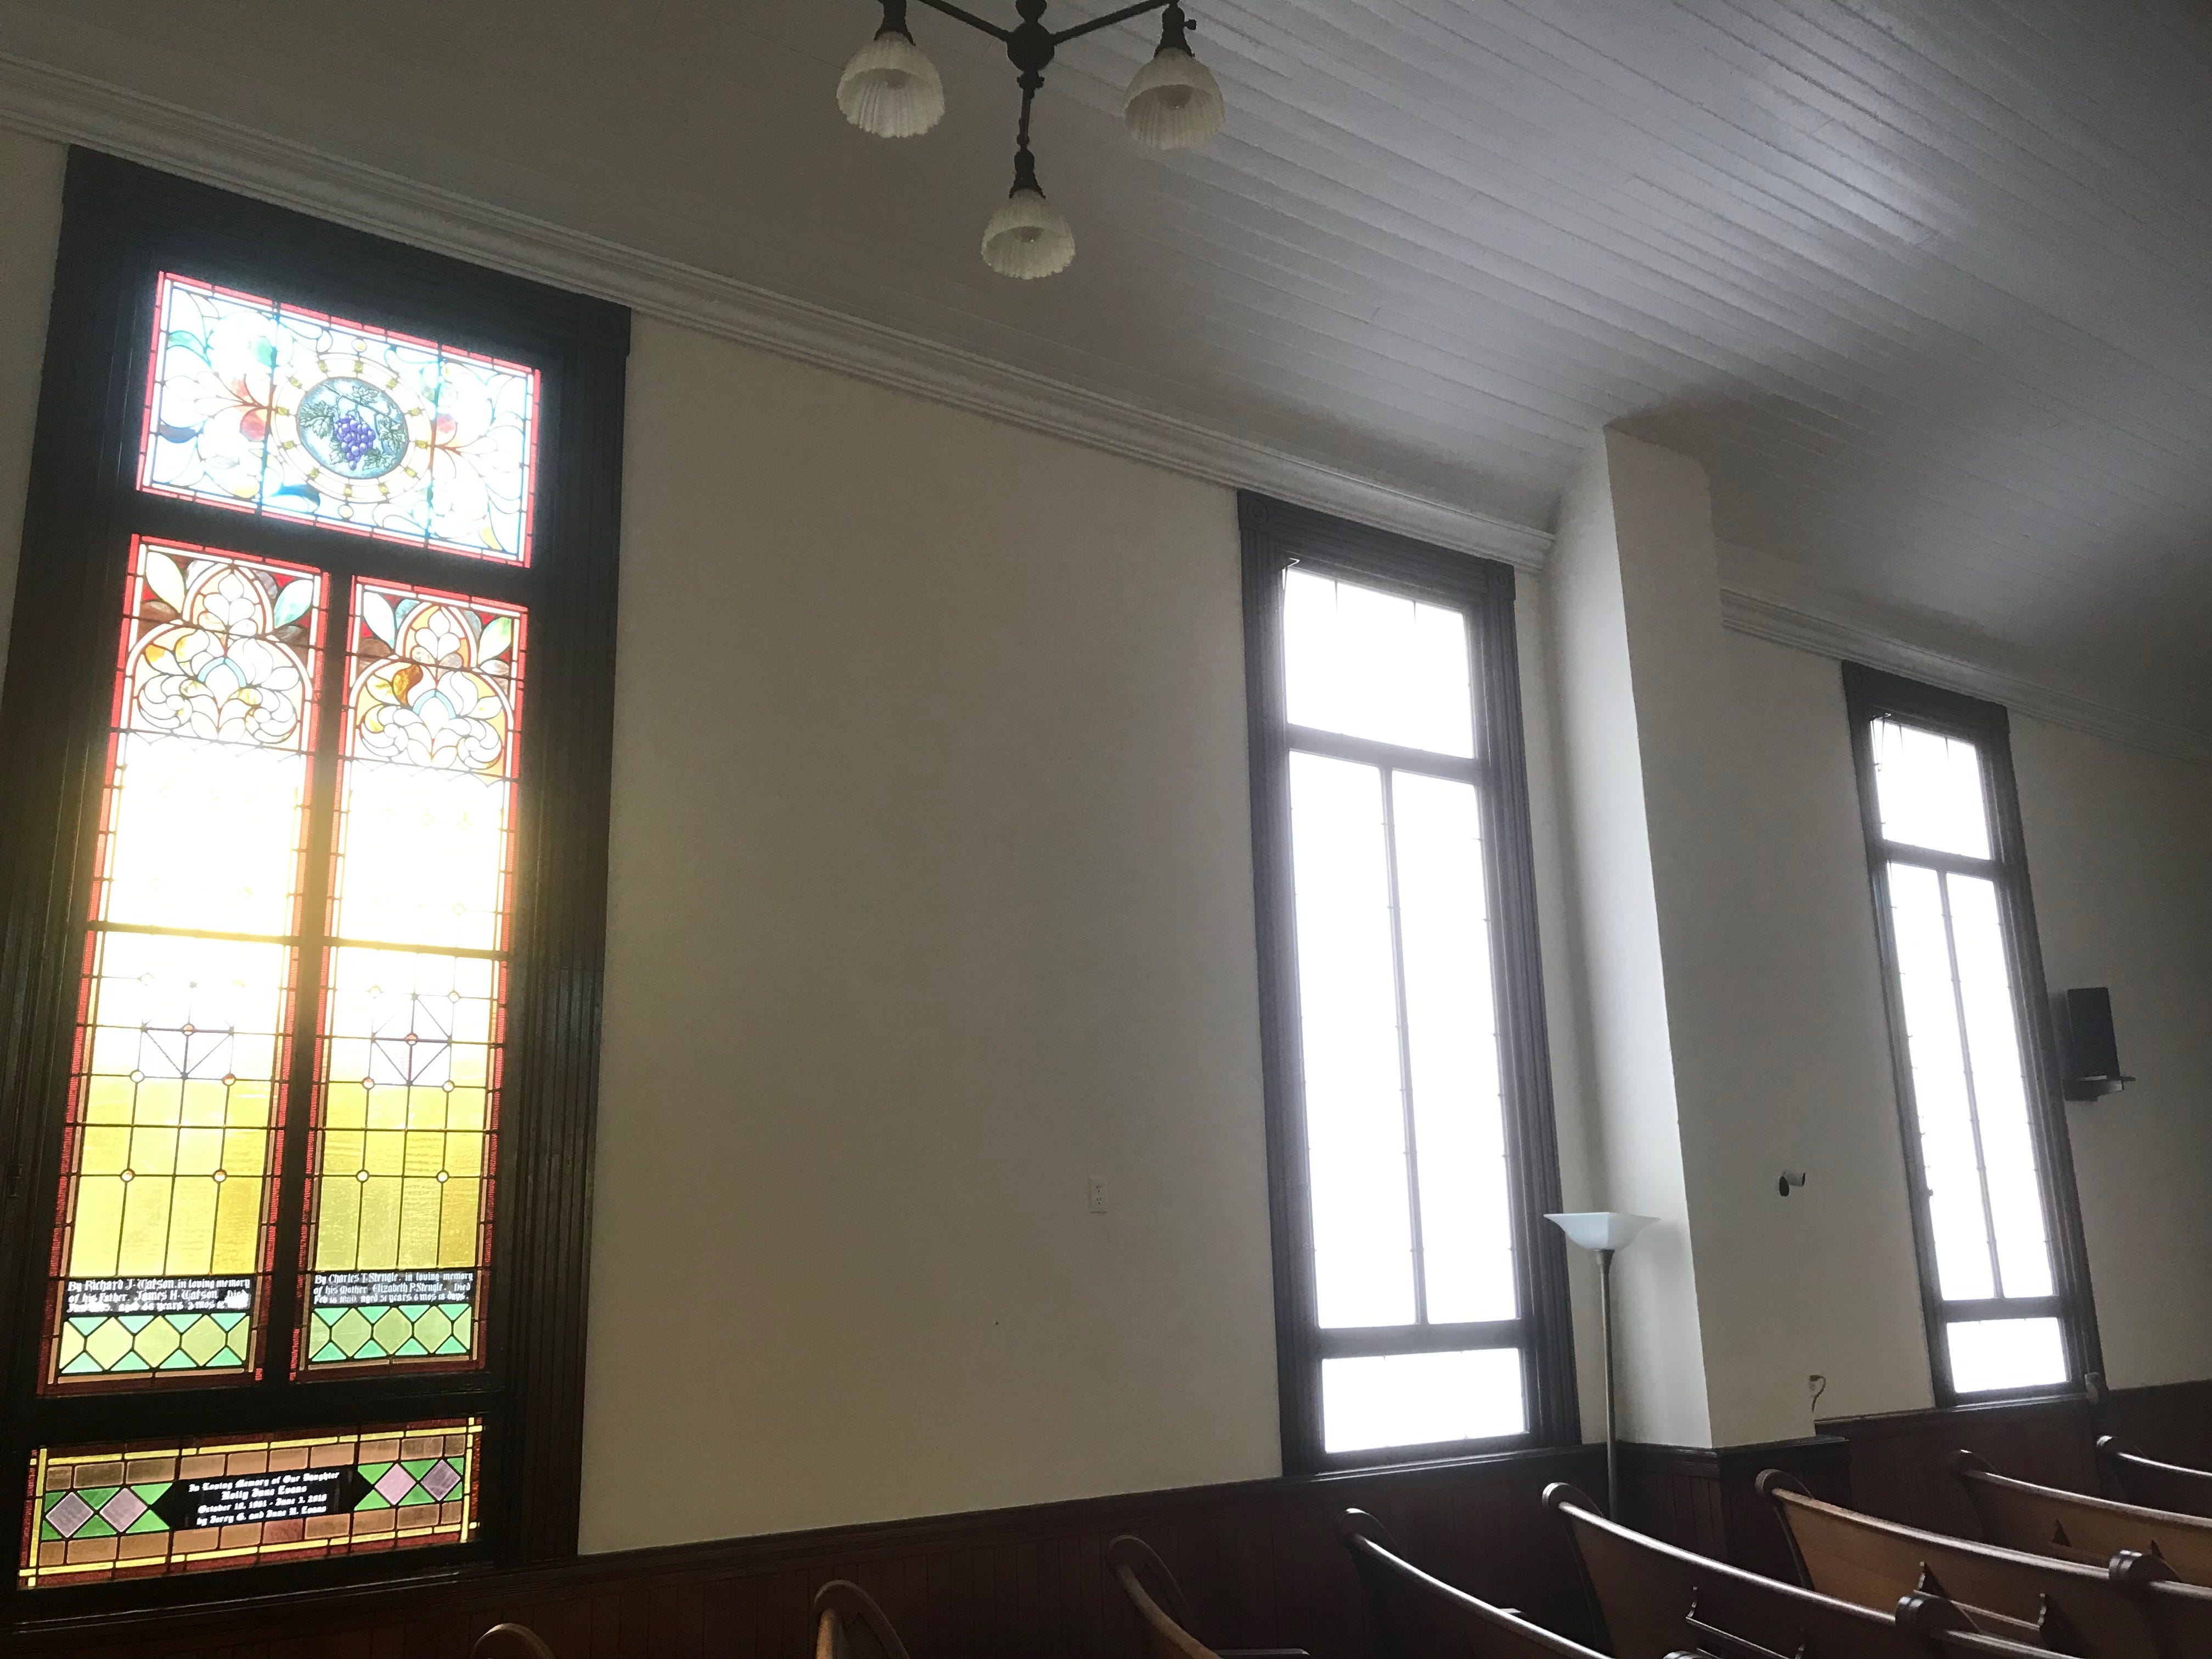 The final three stained glass windows to be restored at Historic Cokesbury Church in Onancock, Virginia were removed the last week in January 2019 and taken to Philadelphia, where the restoration work is being done.